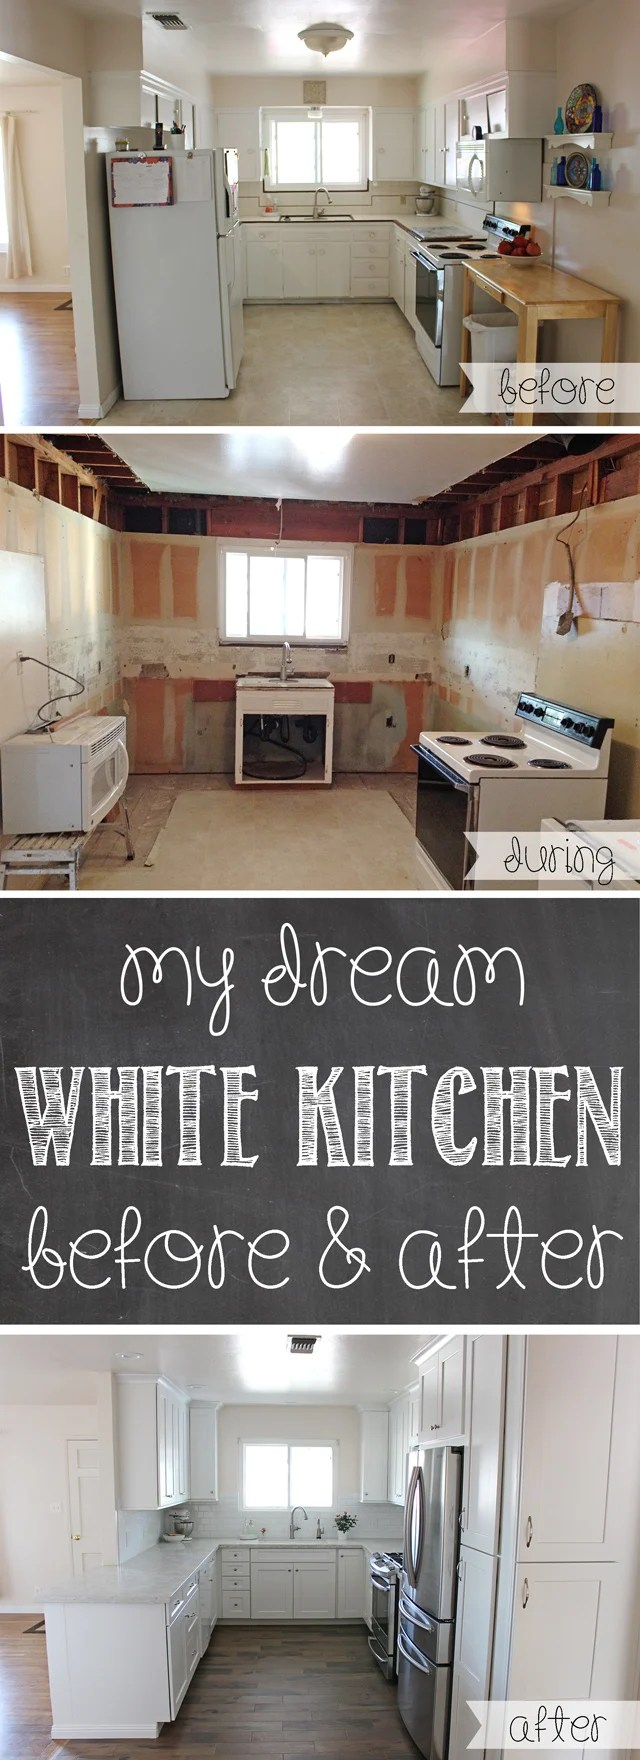 my dream white kitchen remodel kitchen cost GORGEOUS Kitchen Remodel Lots of before and after photos tips for remodeling cost